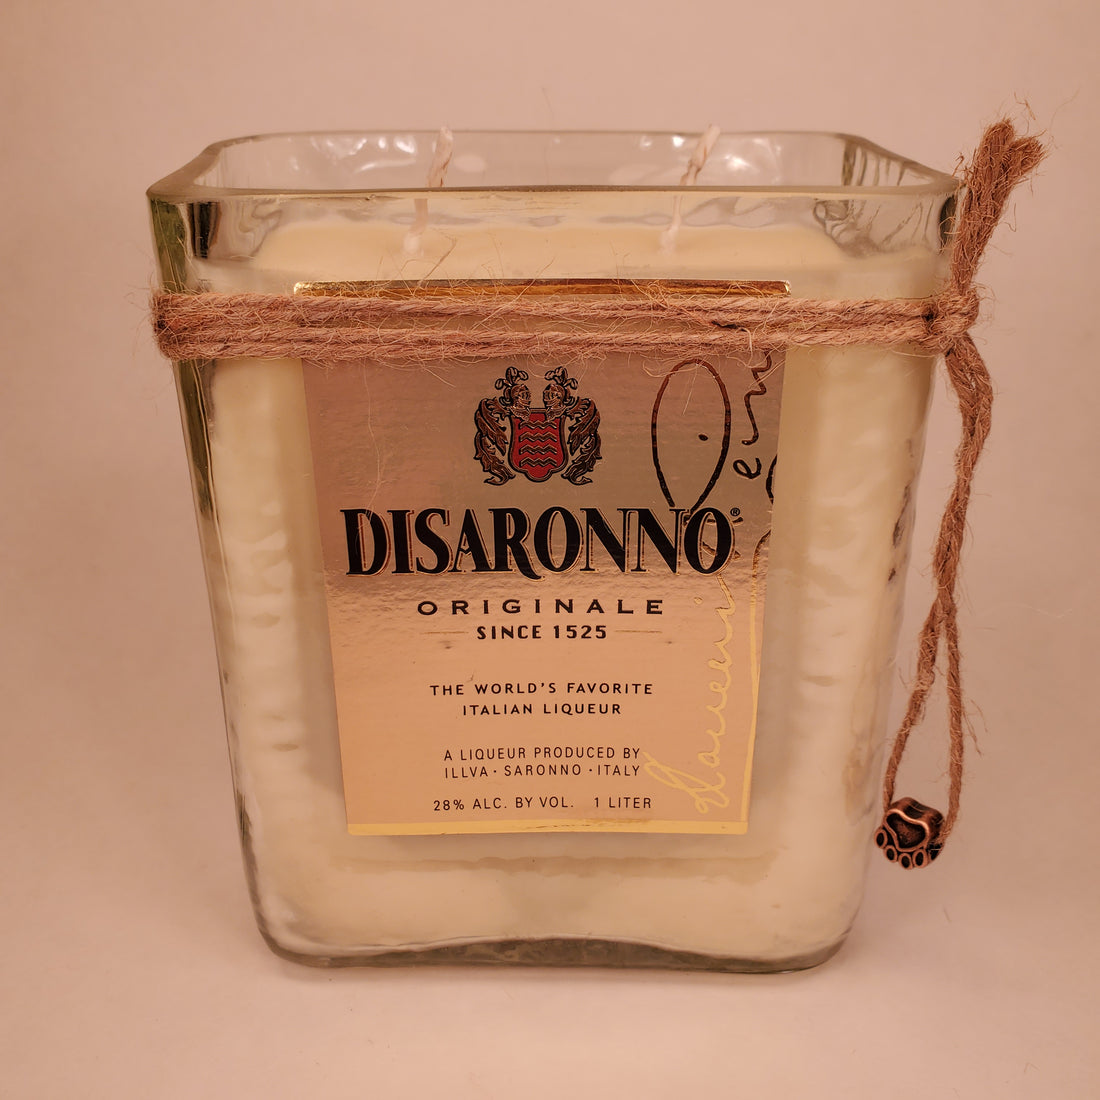 Disaronno 1L Hand Cut Upcycled Liquor Bottle Candle - Scent - Butterscotch Bourbon